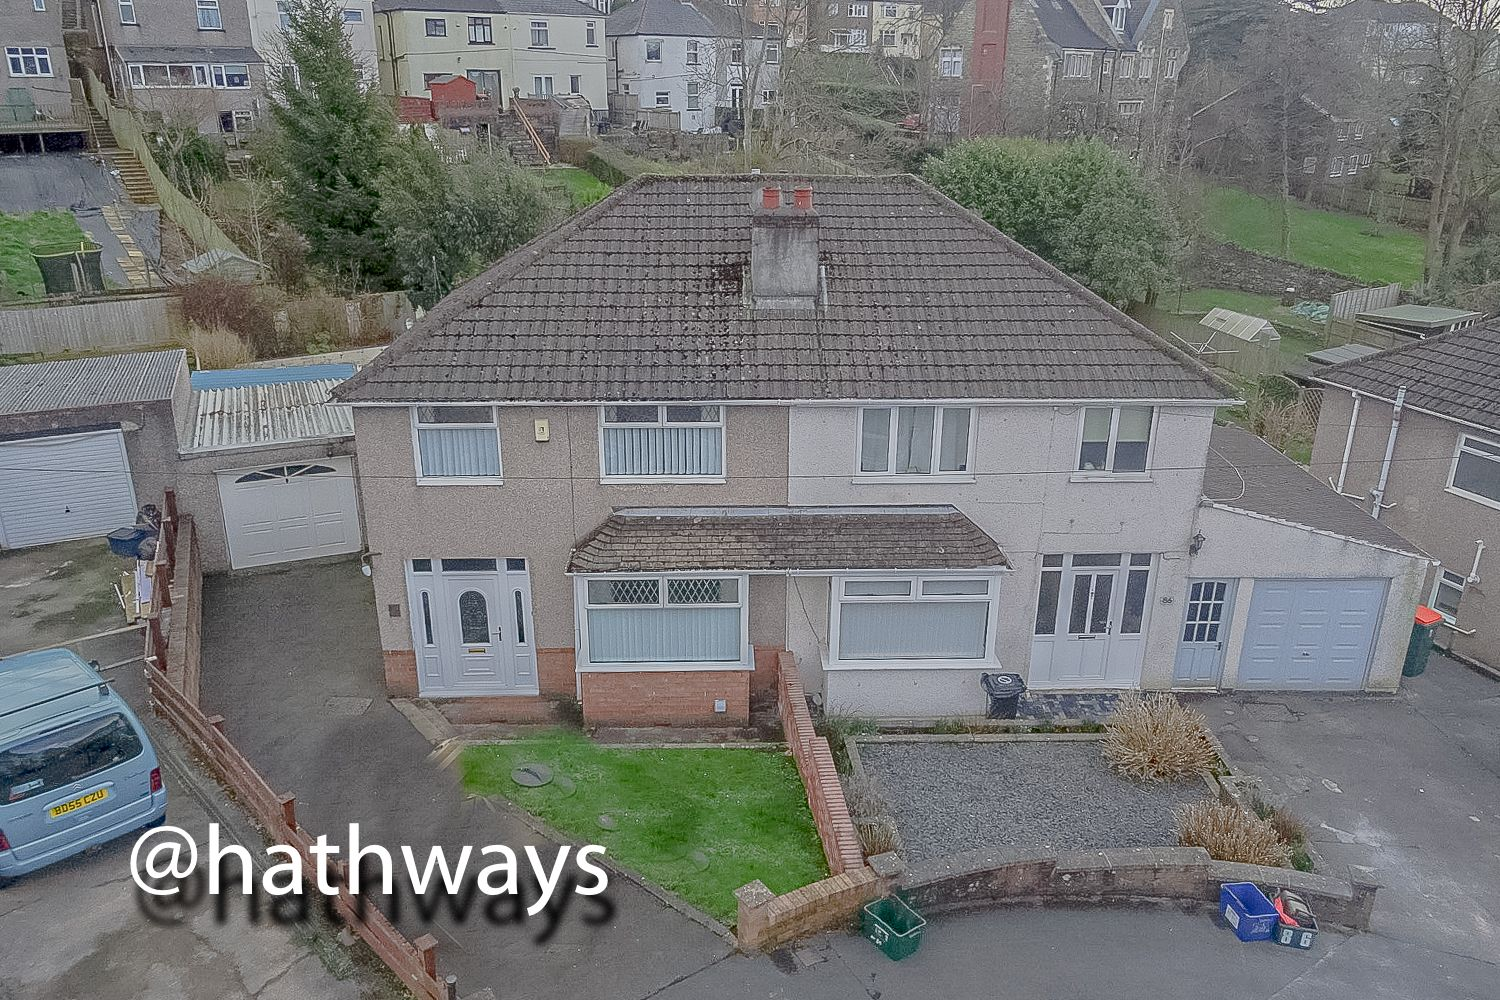 3 bed house for sale in Aston Crescent, NP20